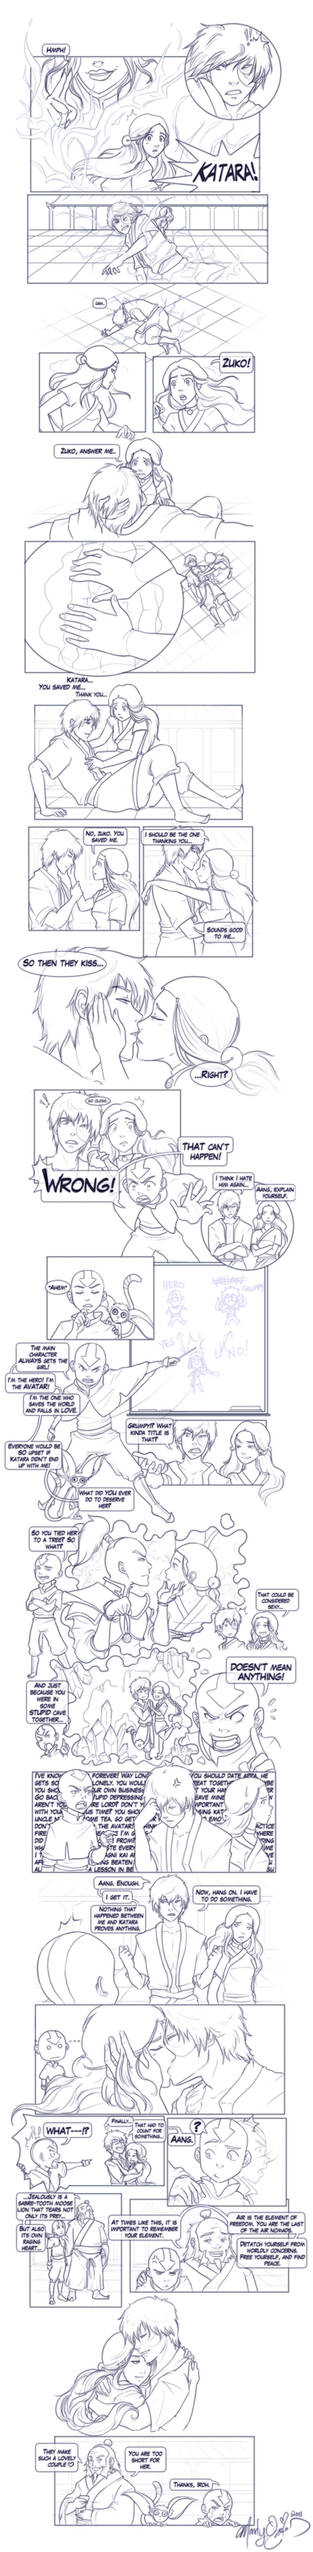 The End - Comic